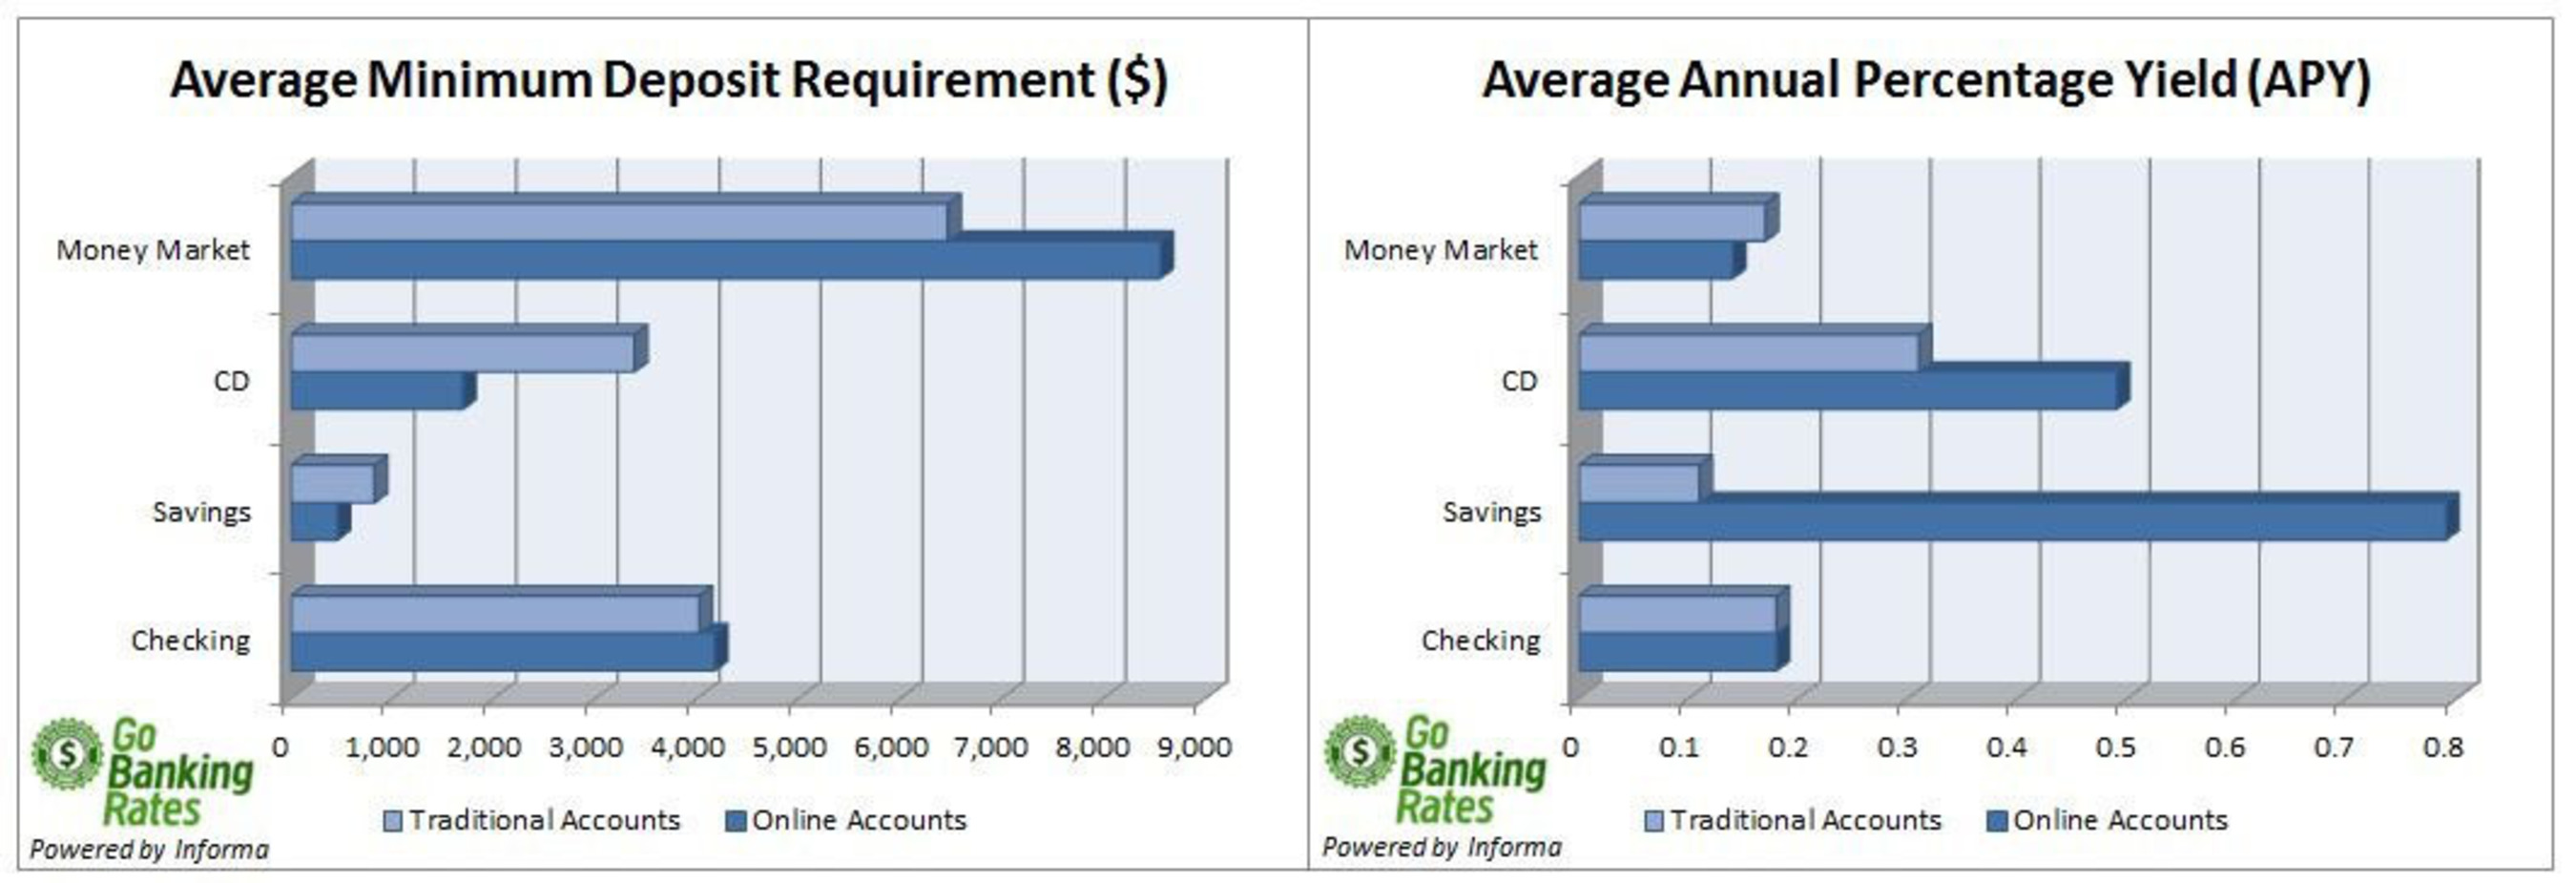 GoBankingRates.com compares online and traditional minimum deposit requirements and interest rates on savings, ...